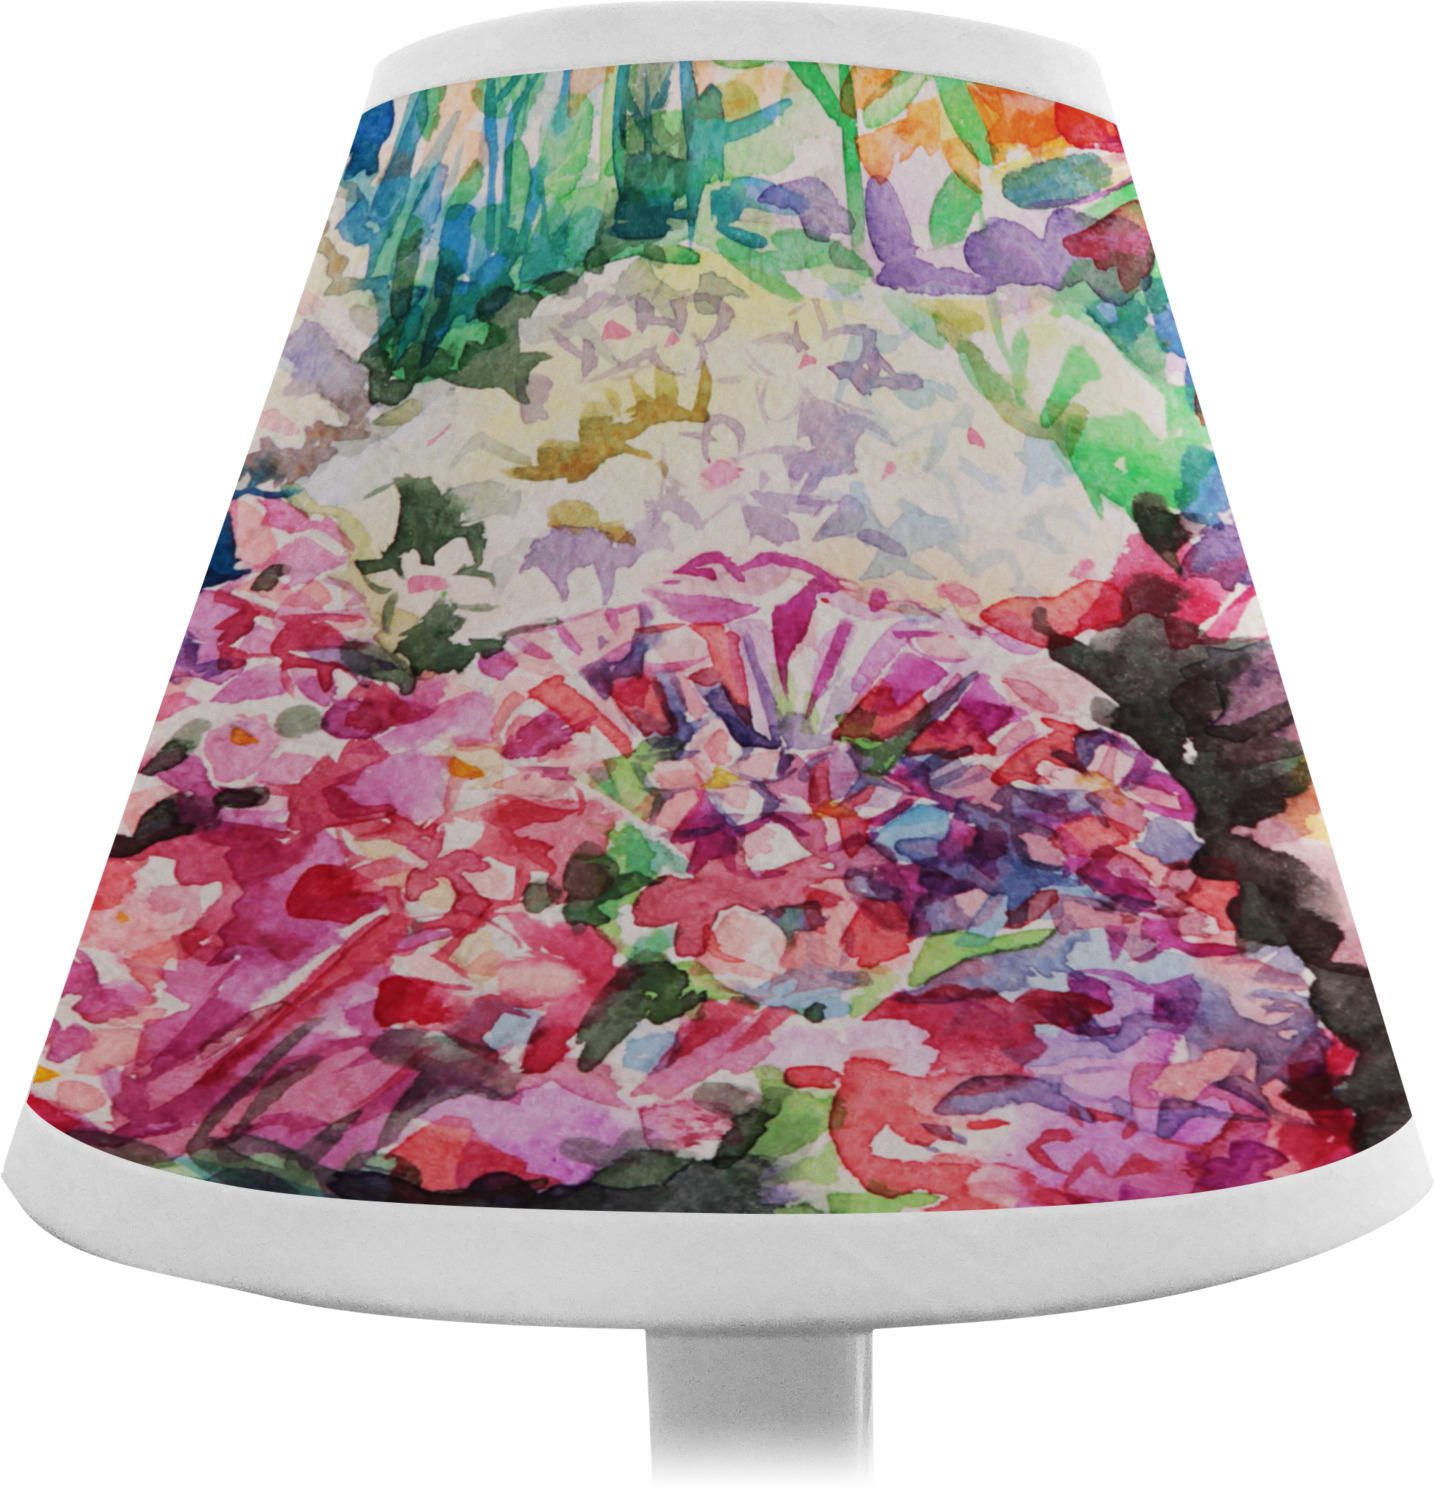 Flower Lamp Shade : Watercolor floral chandelier lamp shade youcustomizeit